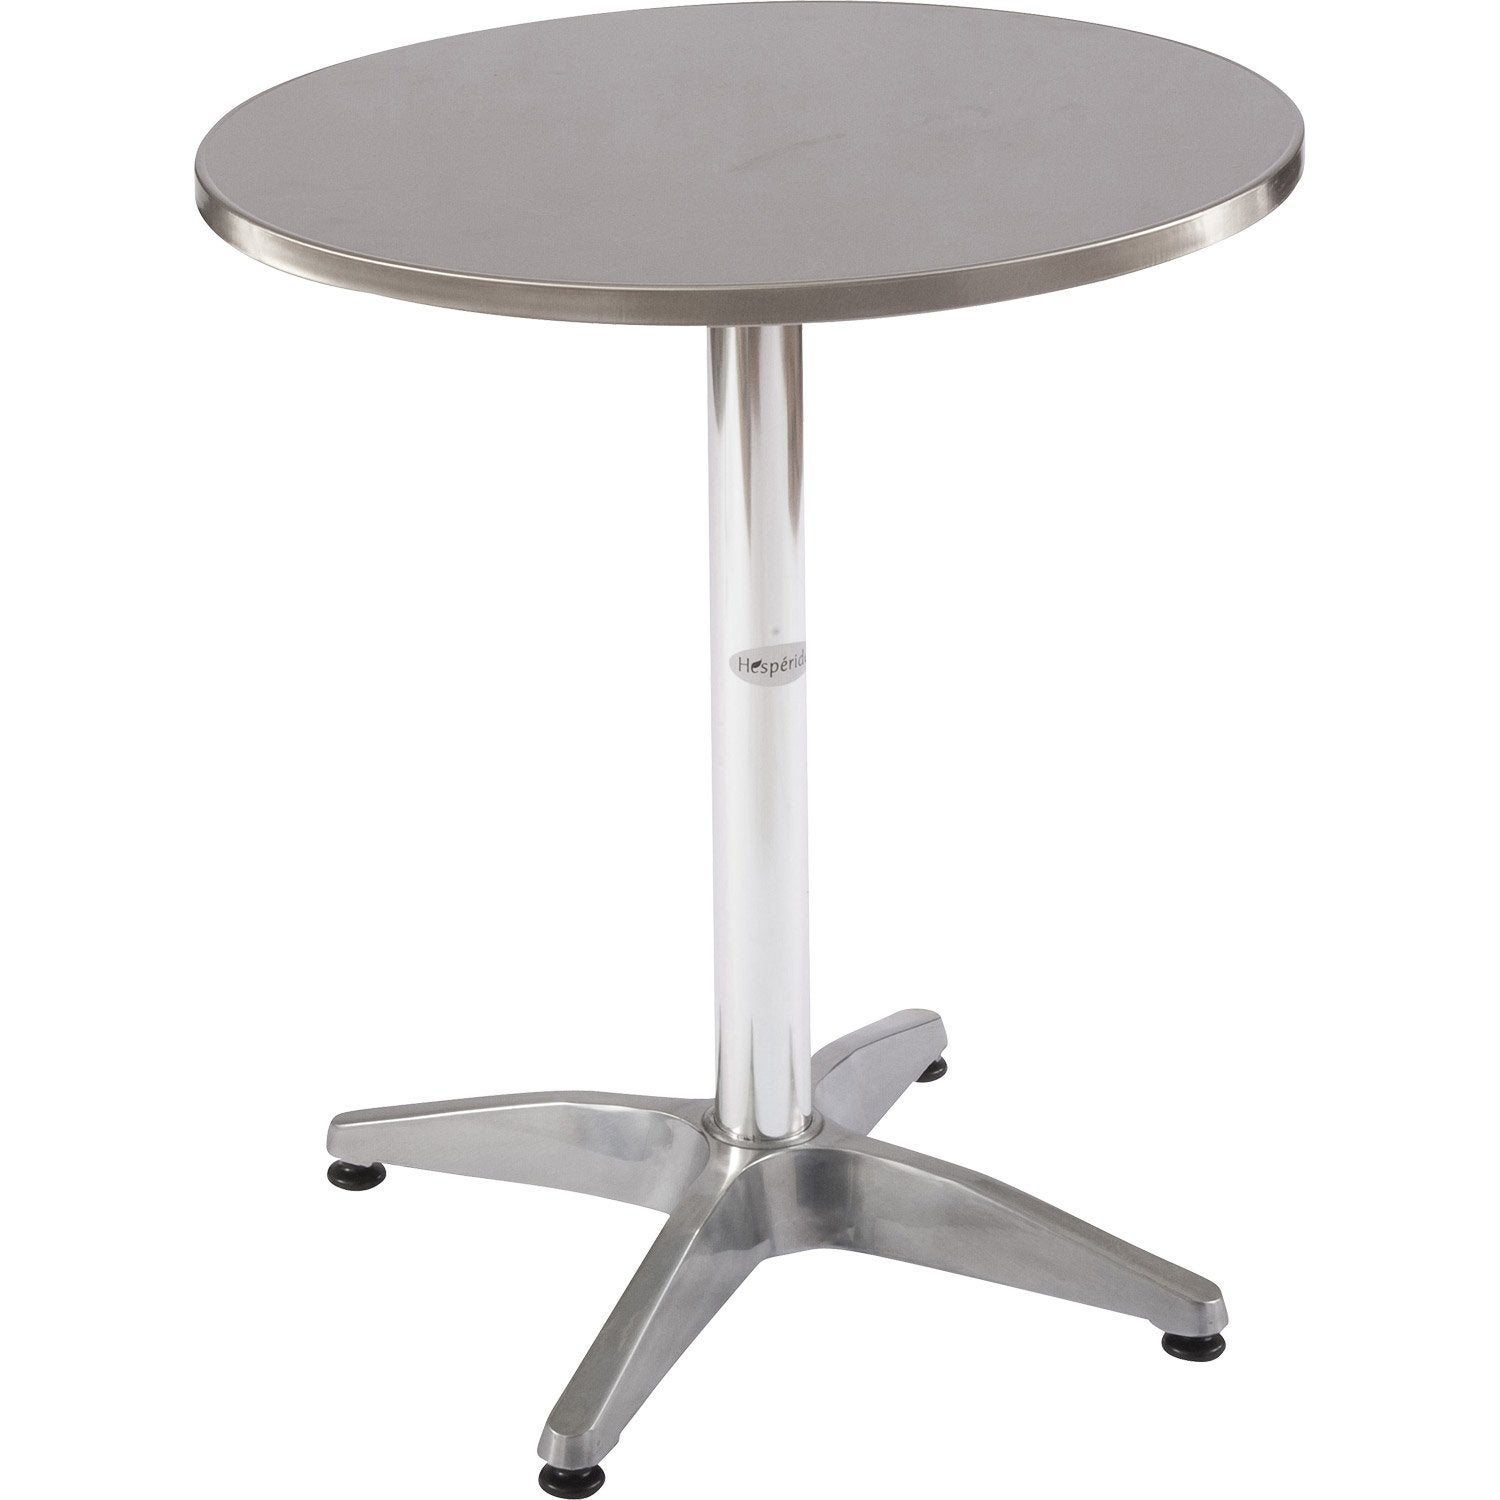 Table basse cuidadella ronde gris 2 personnes leroy merlin for Table exterieur 2 personnes